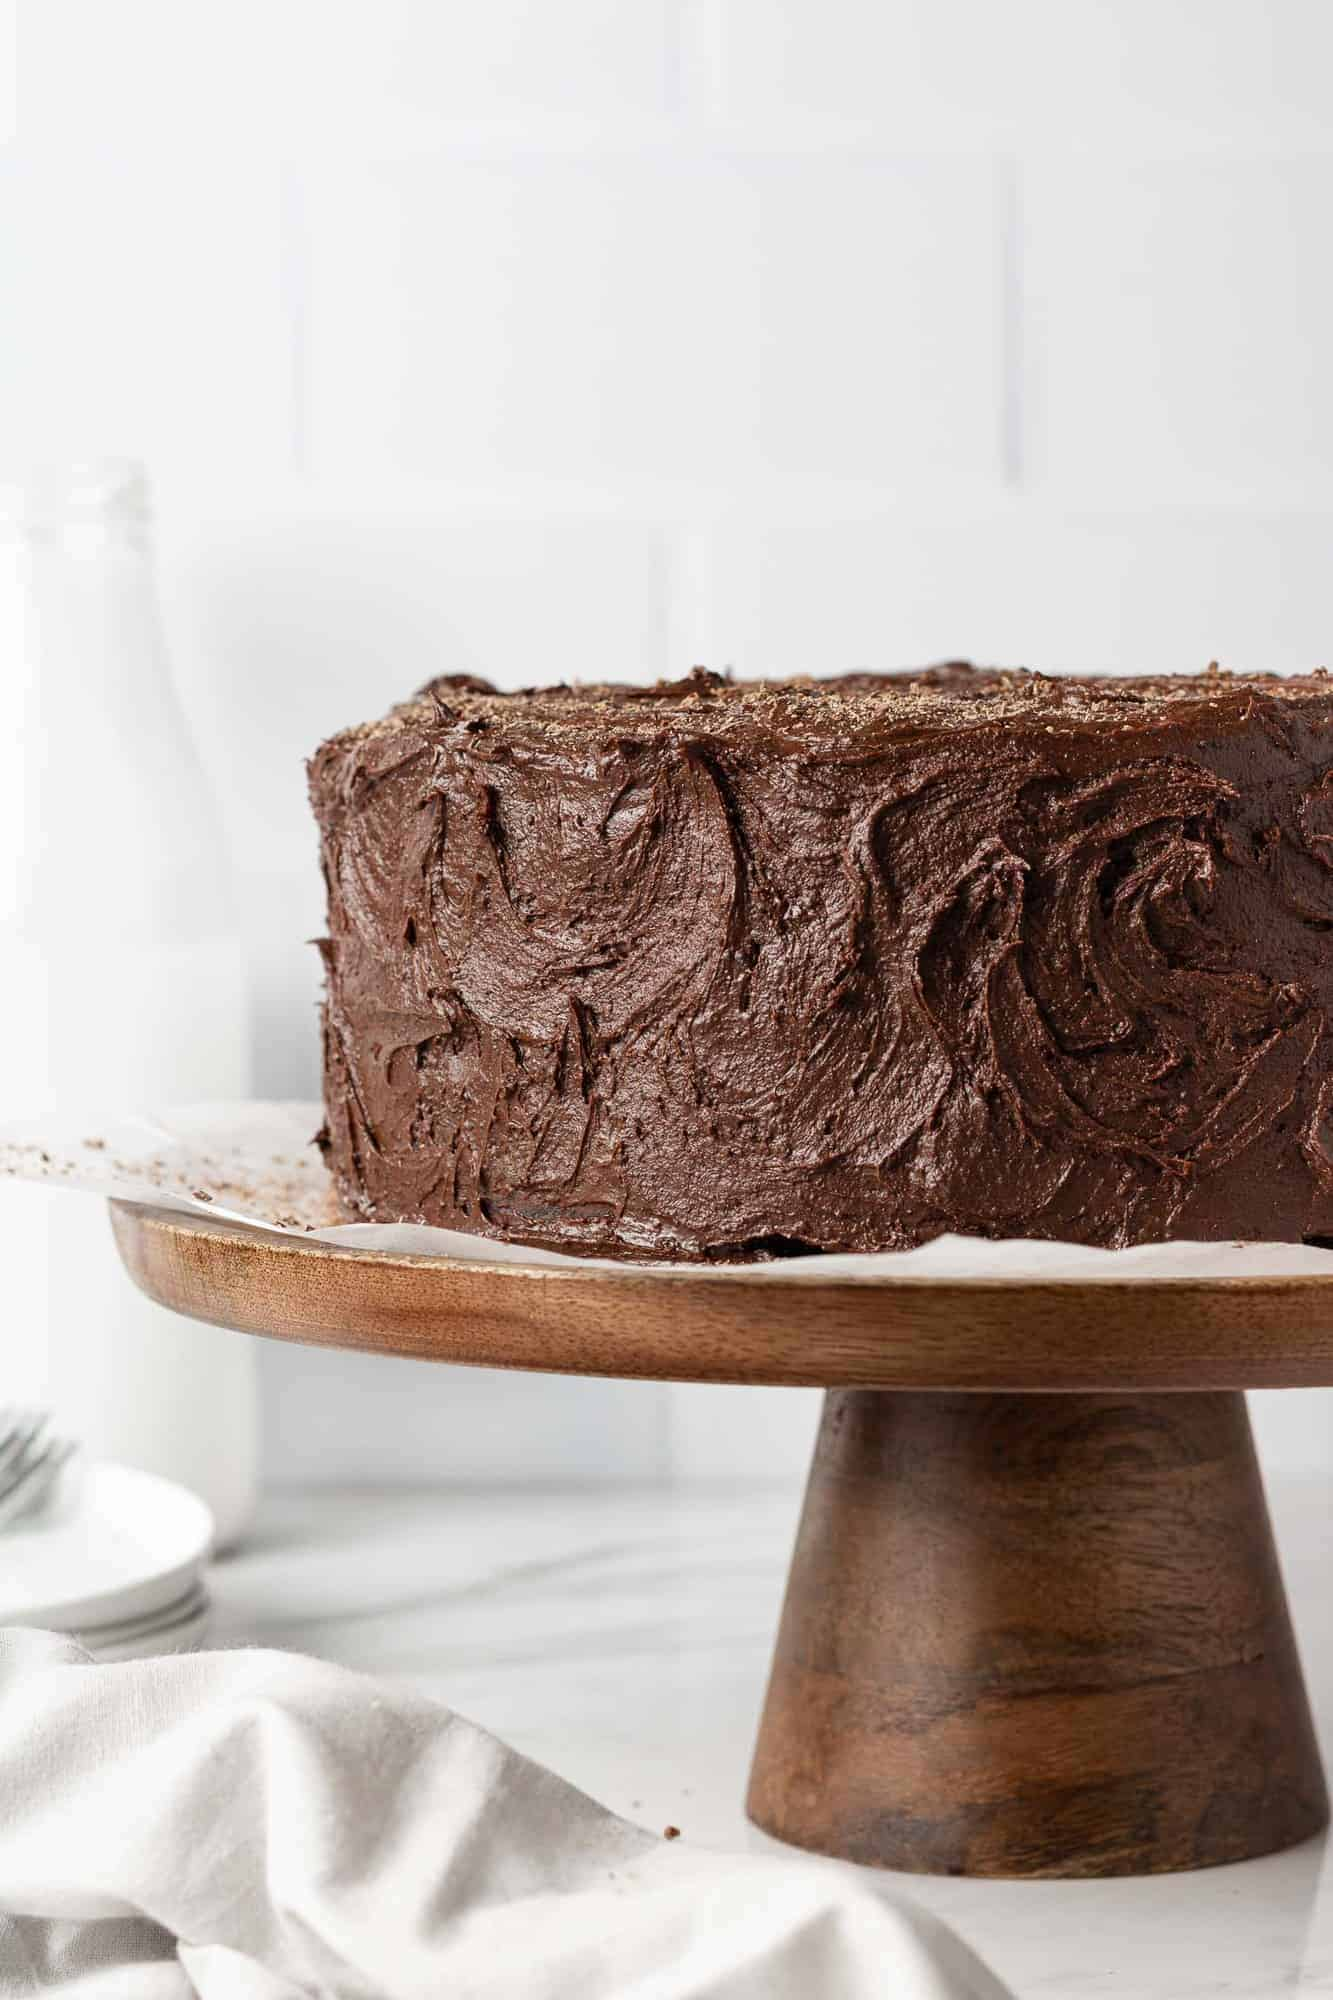 Chocolate layer cake on a cake stand.